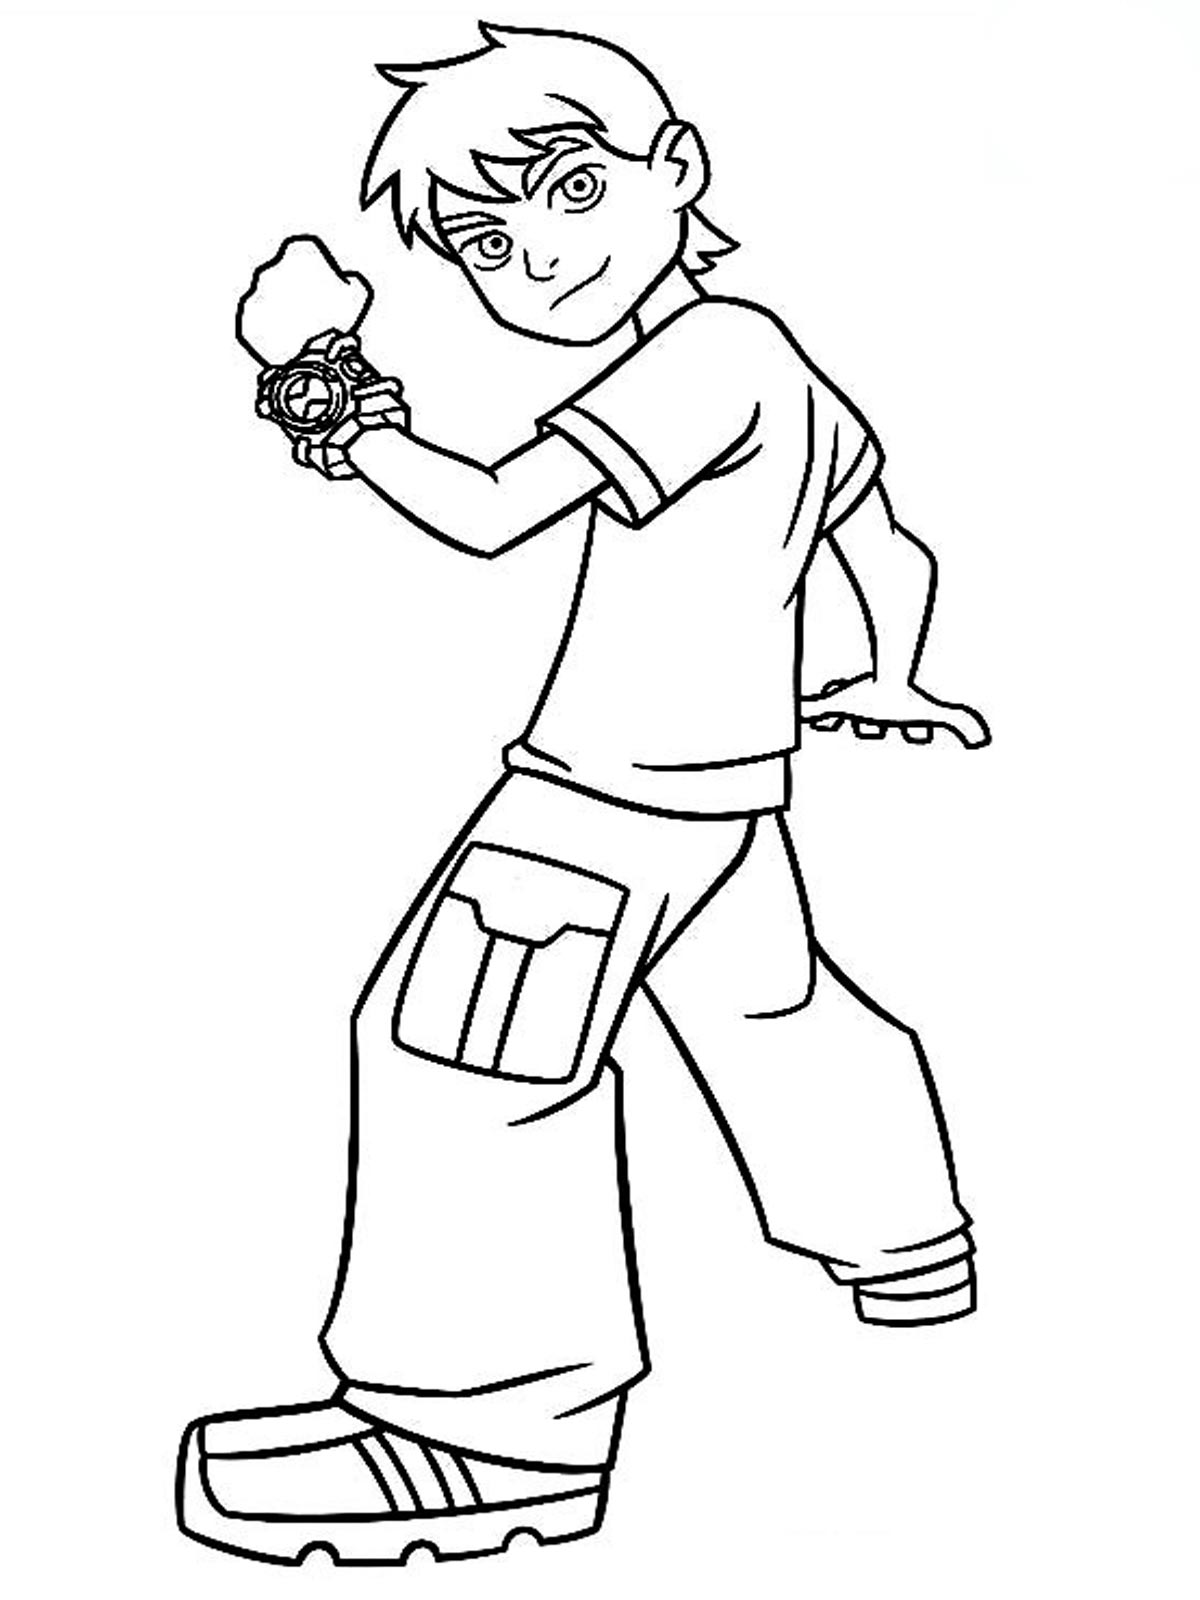 ben 10 coloring sheets printable ben ten coloring pages for kids cool2bkids sheets 10 coloring ben